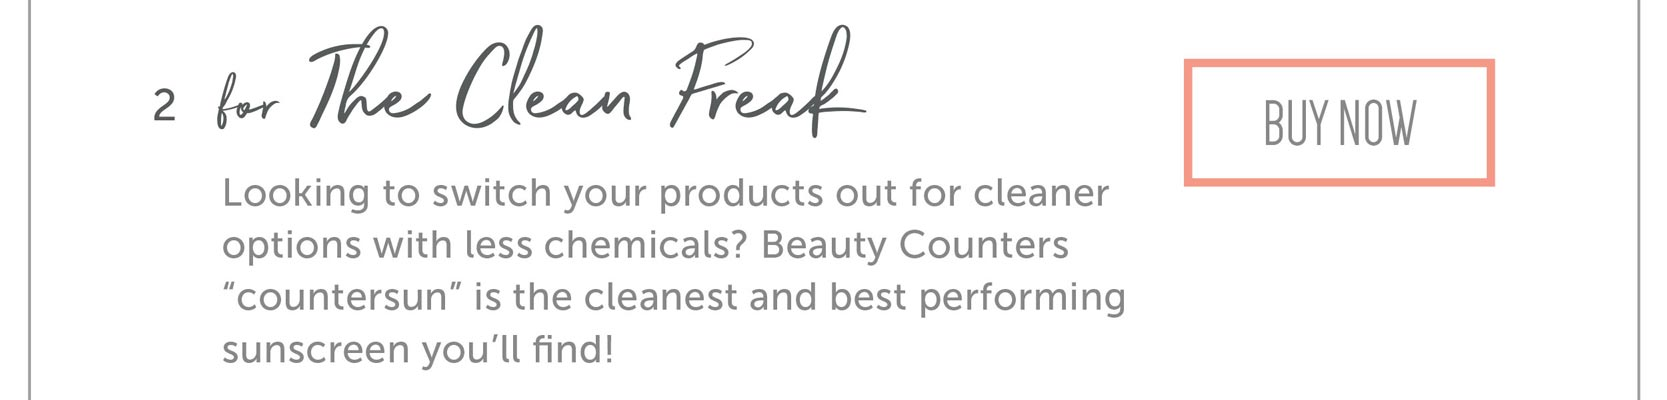 """For The Clean Freak Looking to switch your products out for cleaner options with less chemicals? Beauty Counters """"countersun"""" is the cleanest and best performing sunscreen you'll find!"""